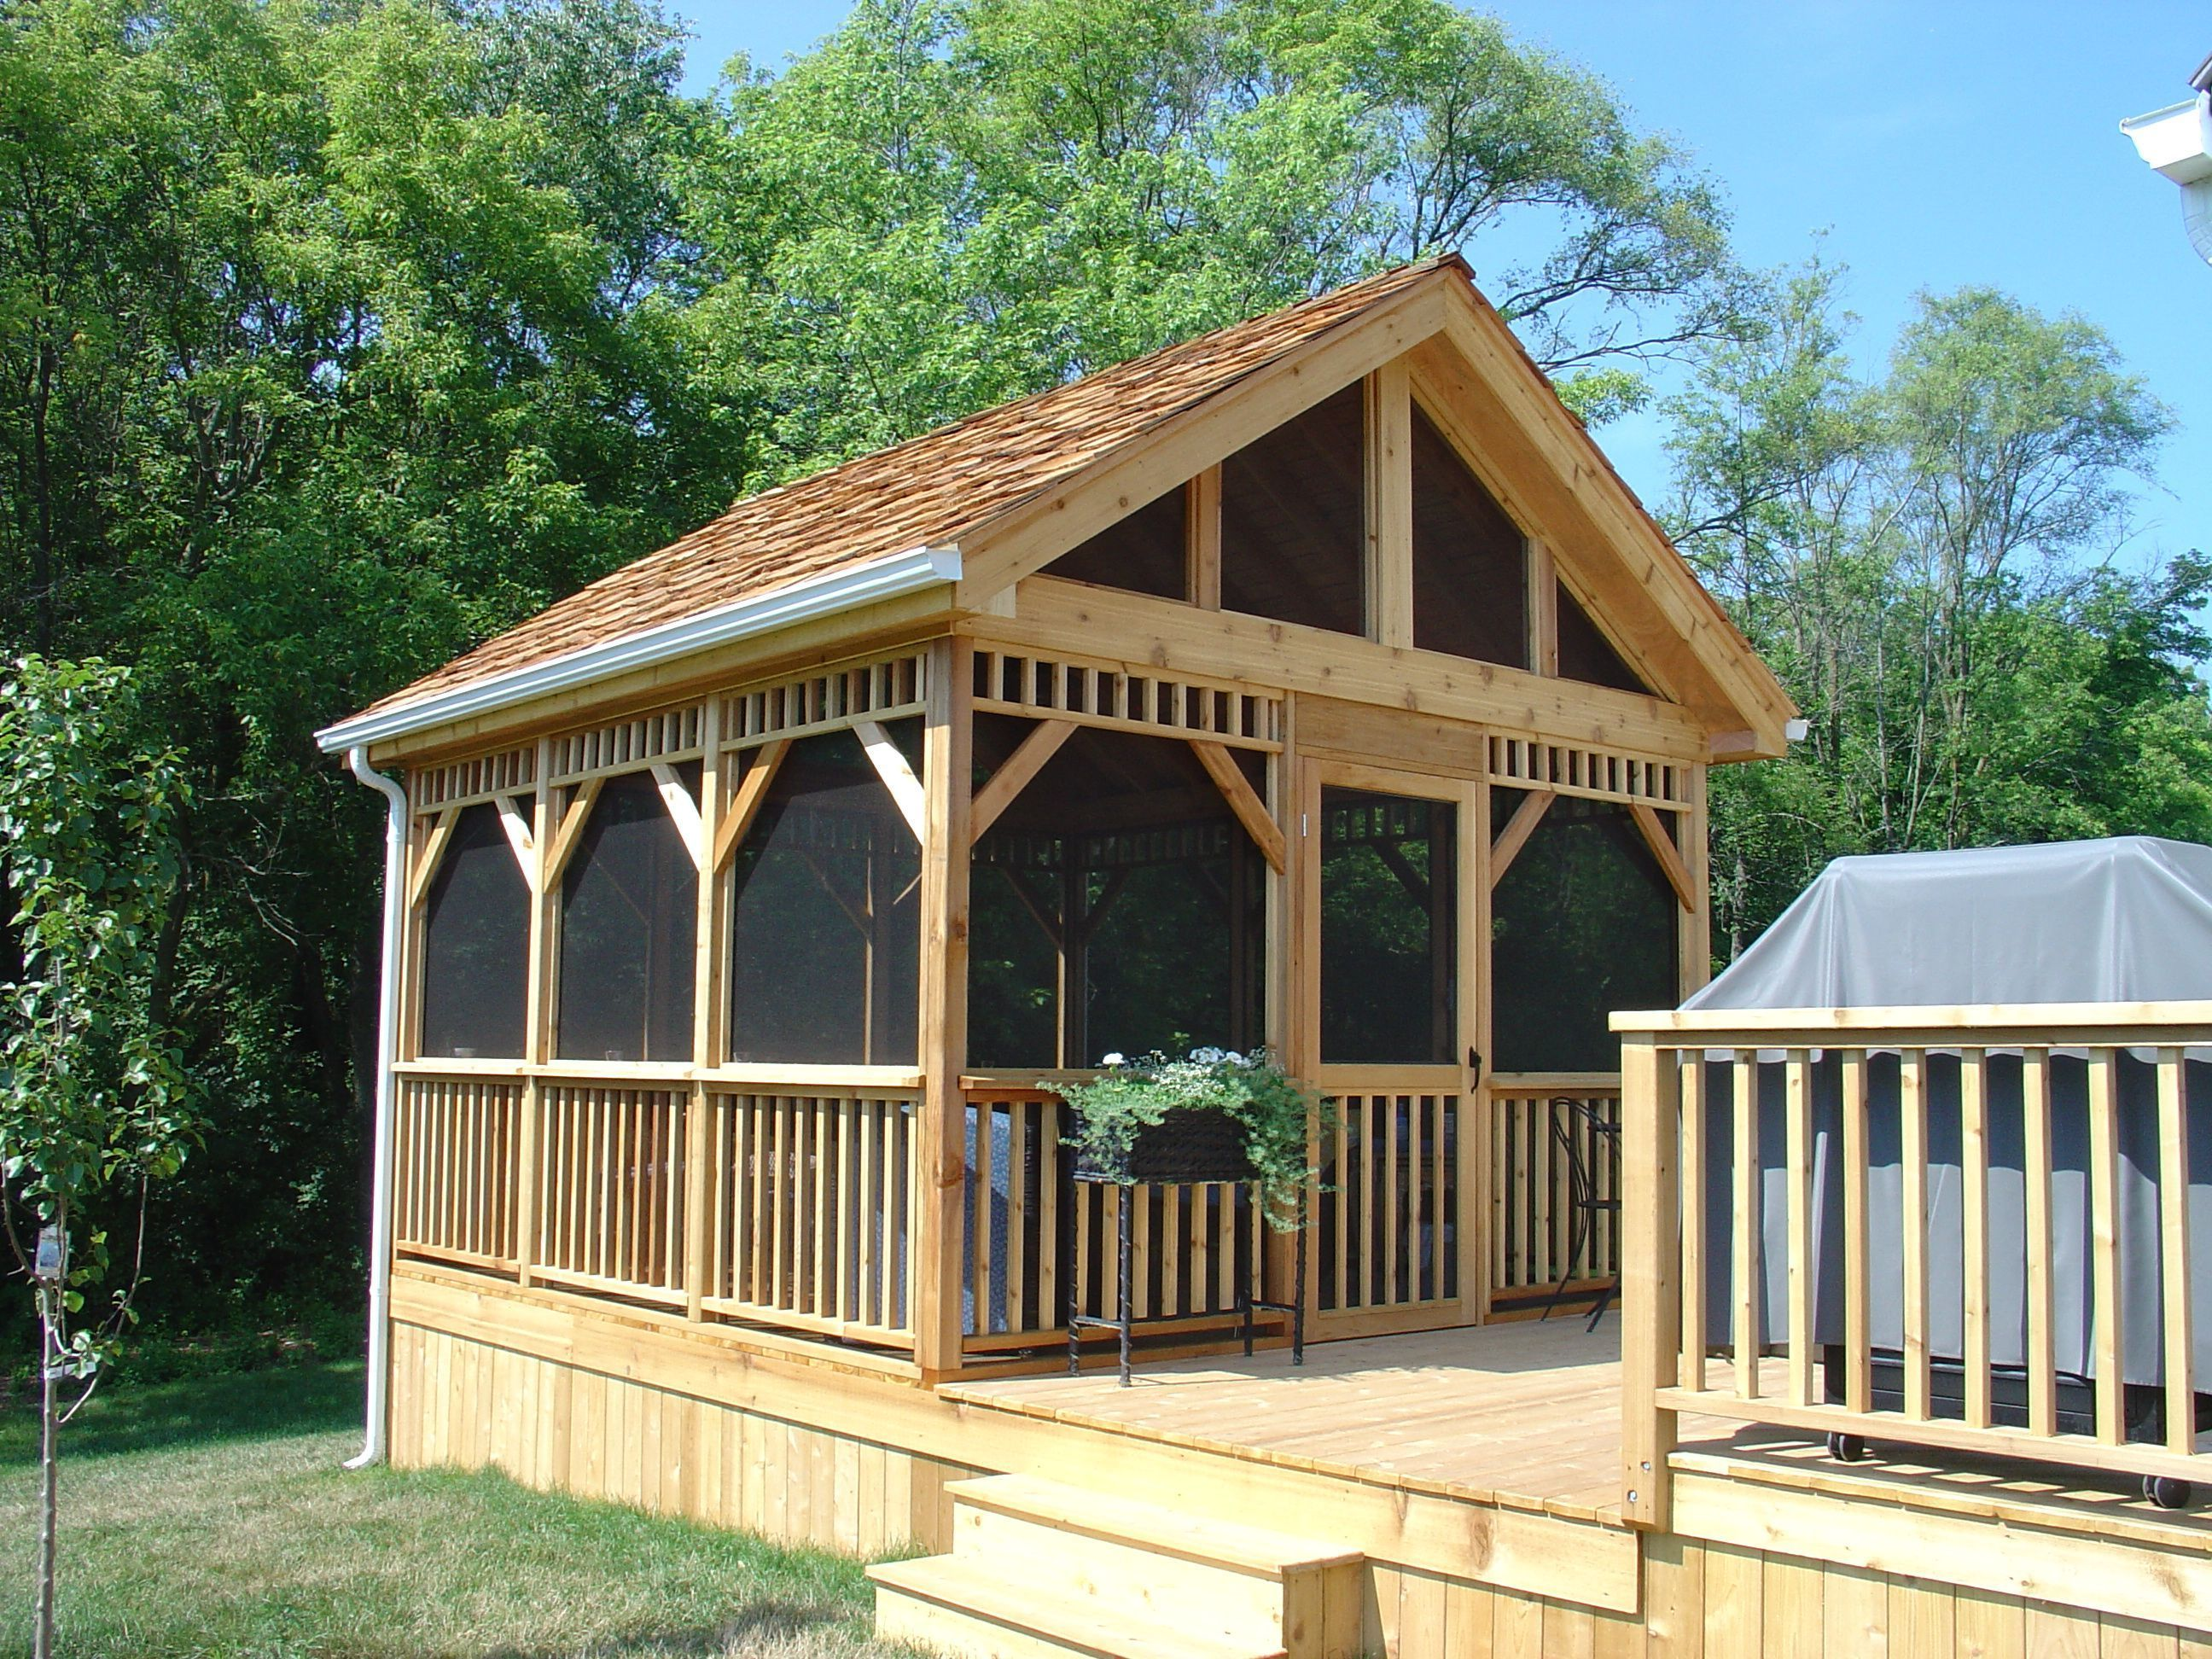 to Build A Freestanding Patio Cover with Best 10 Samples Ideas Free standing patio cover ideas with 10 samples ideas.Free standing patio cover ideas with 10 samples ideas.